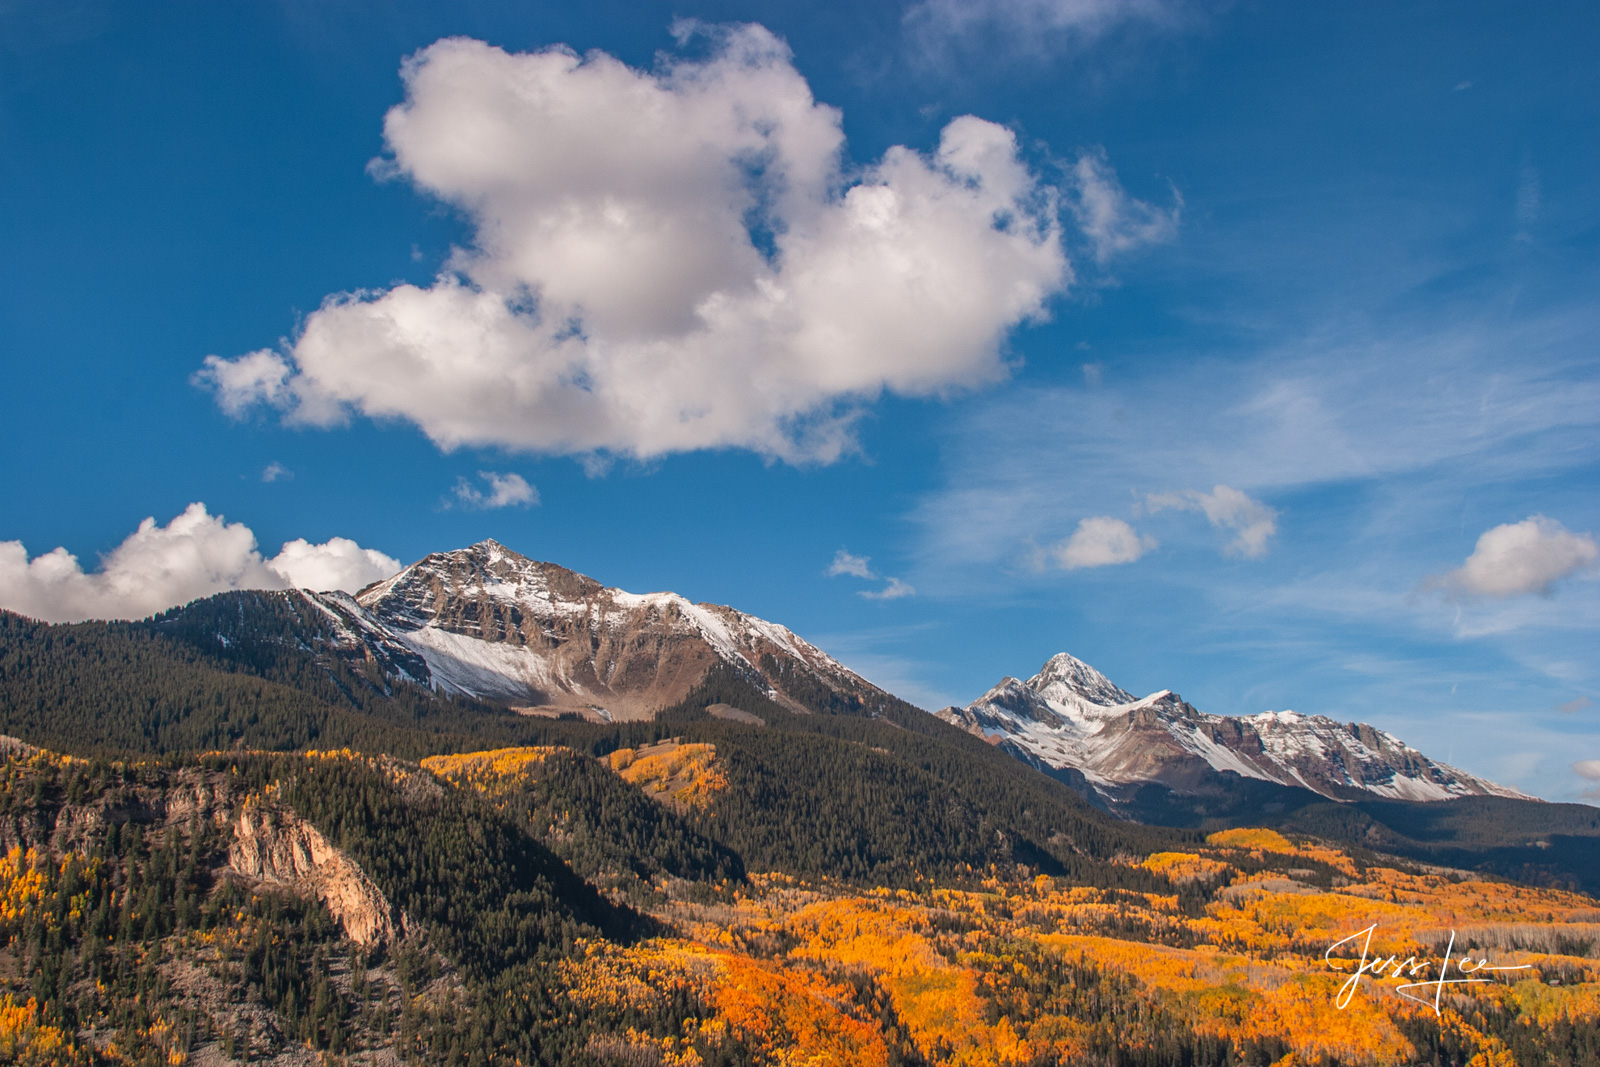 Fine Art Limited Edition of 60 Exclusive high-resolution Museum Quality  Photography Prints of San Juan Mountains in Fall.  To...